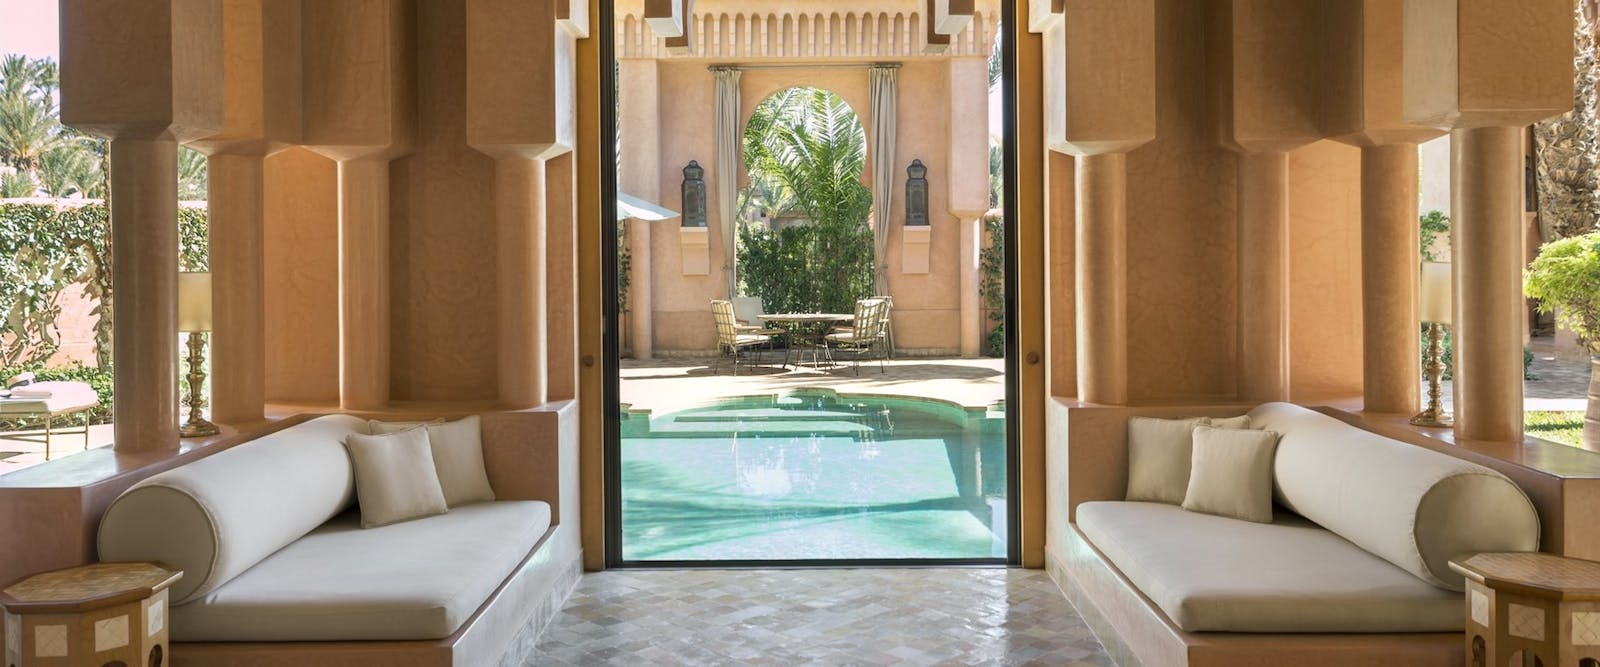 Maisons Private Pool at Amanjena, Marrakech, Morocco